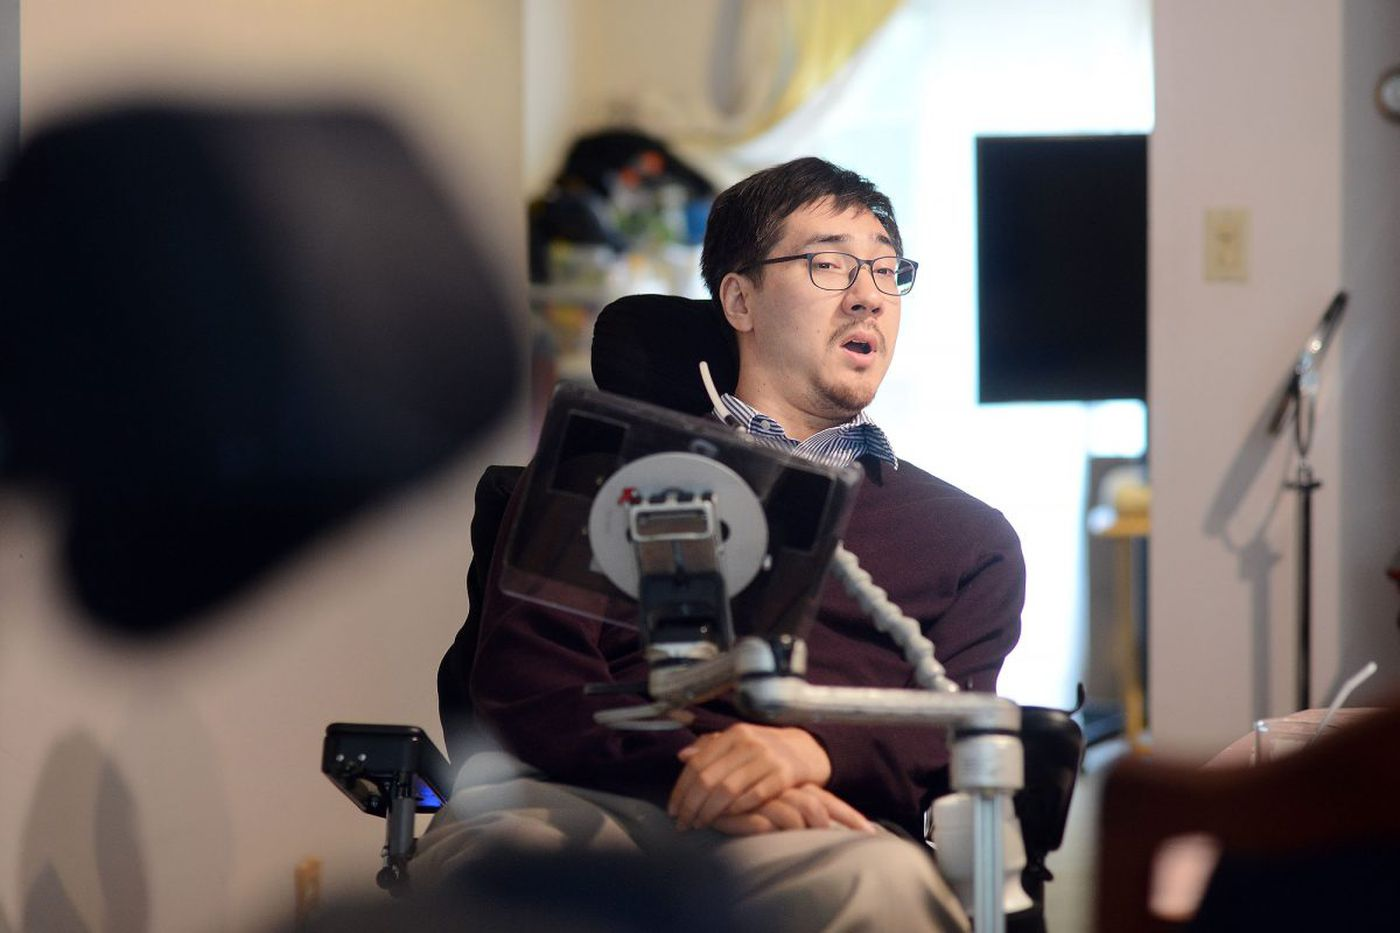 Quadriplegic fights to recover after his Philly lawyer's devastating trial loss